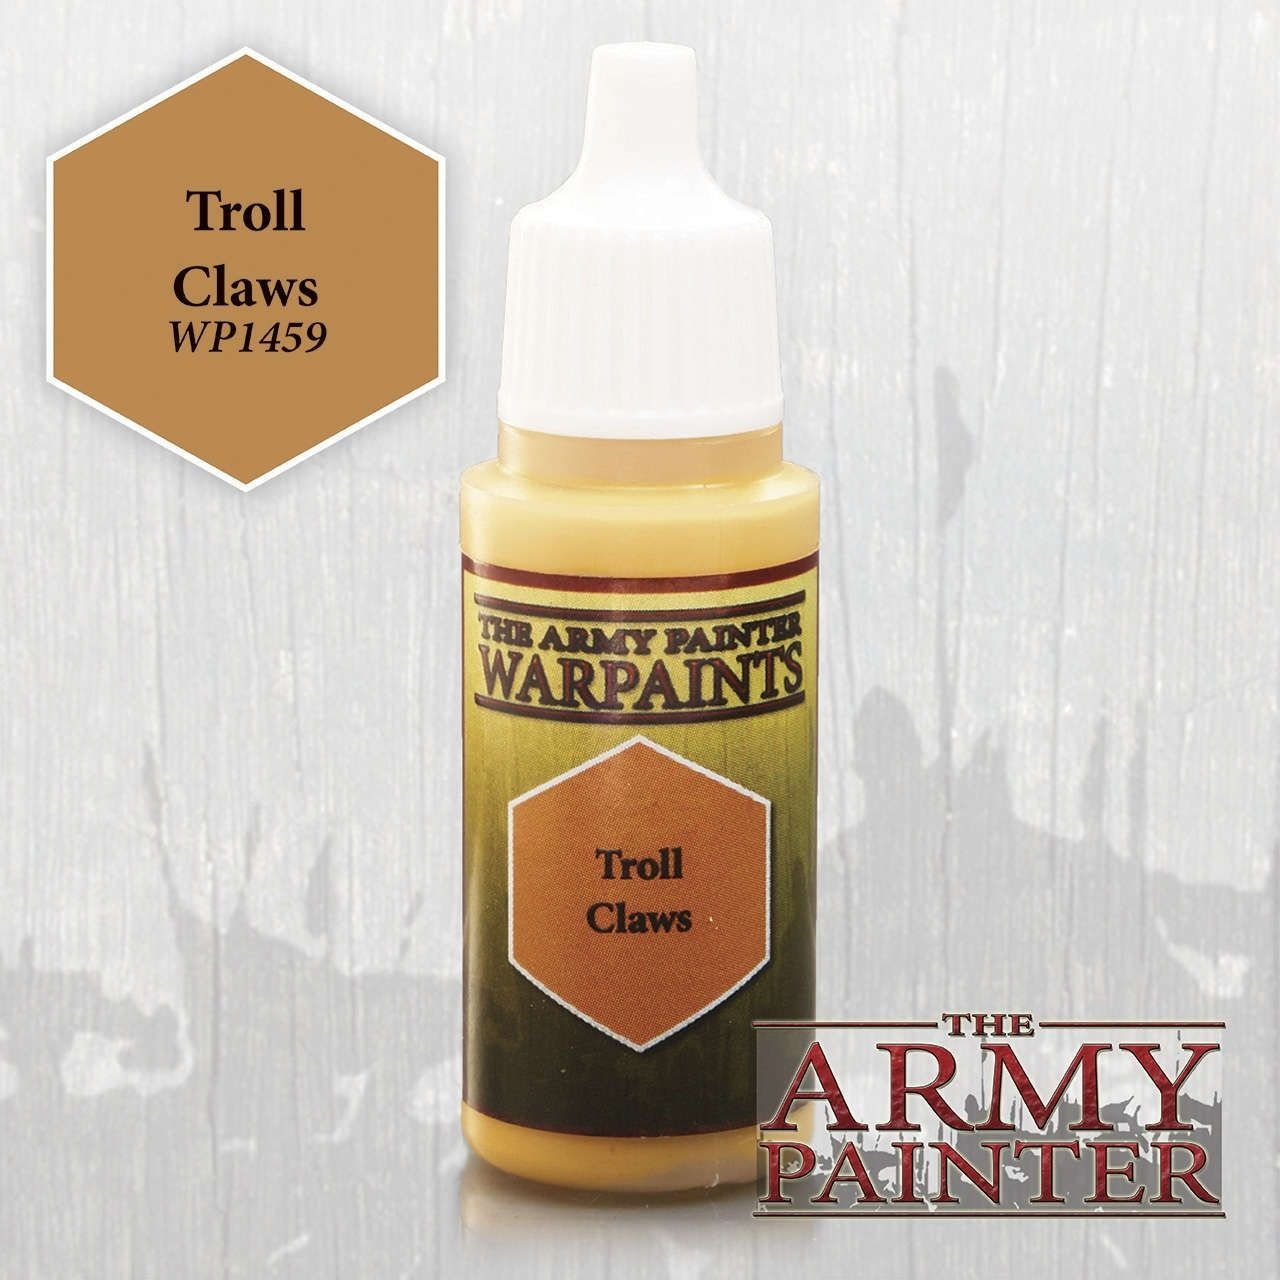 The Army Painter WARPAINT: TROLL CLAWS